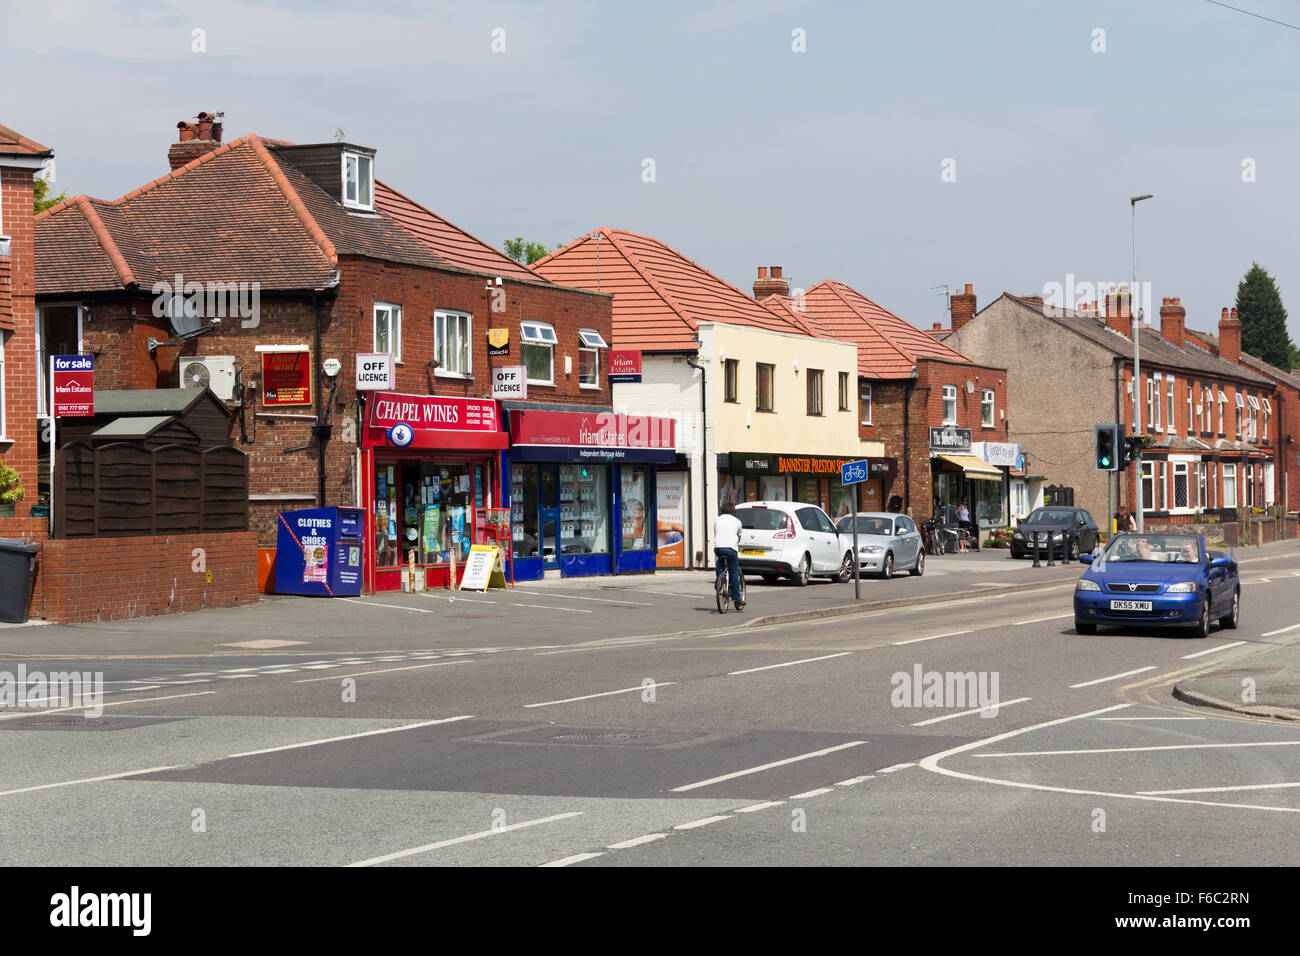 Parade of local shops, including Chapel Wines off-licence and Irlam Estates estate agent, on Liverpool Road, Irlam, - Stock Image